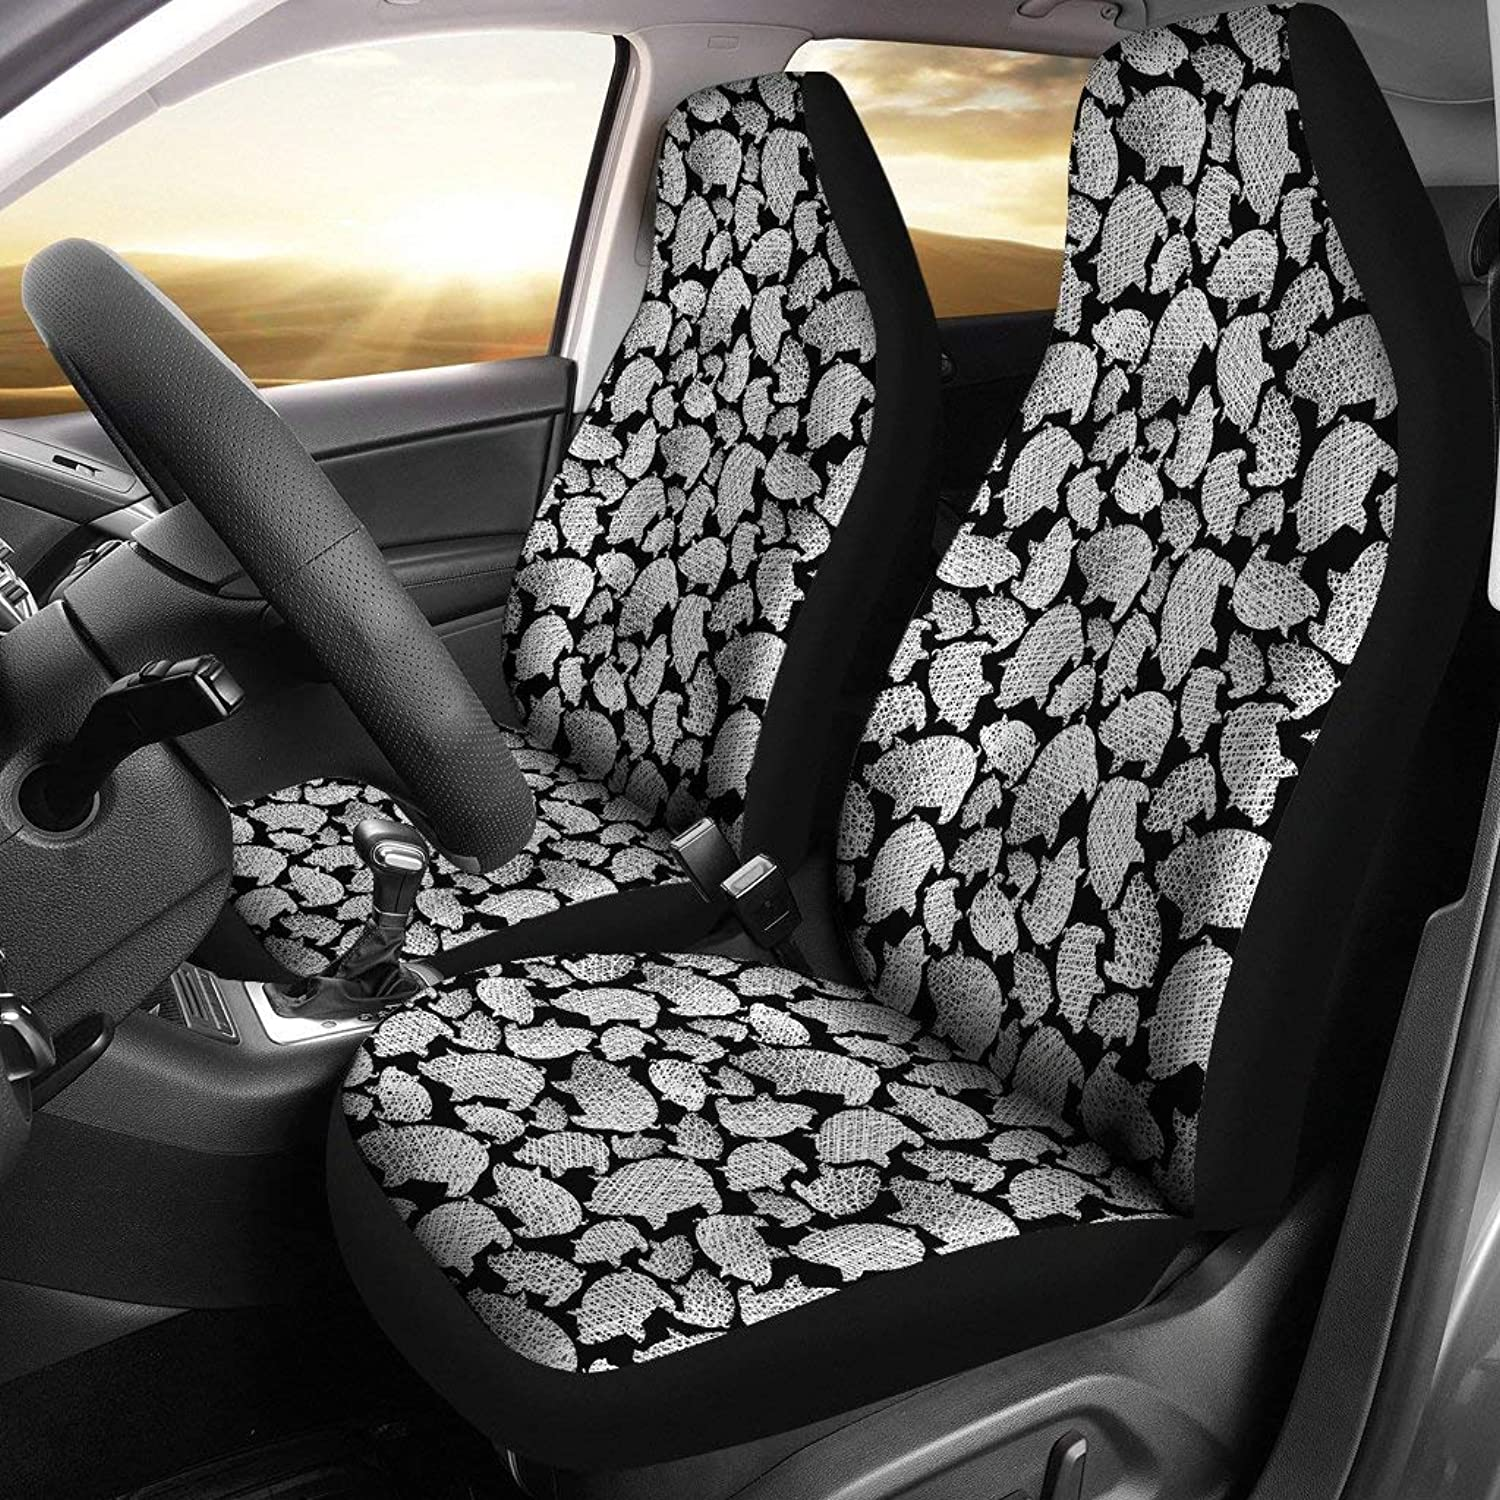 Barn smile Cute Pig Pattern 2 car seat Covers Designed for Quick and Easy Inssizetion on Most car and SUV Bucket Style Seats - no Tools Required.